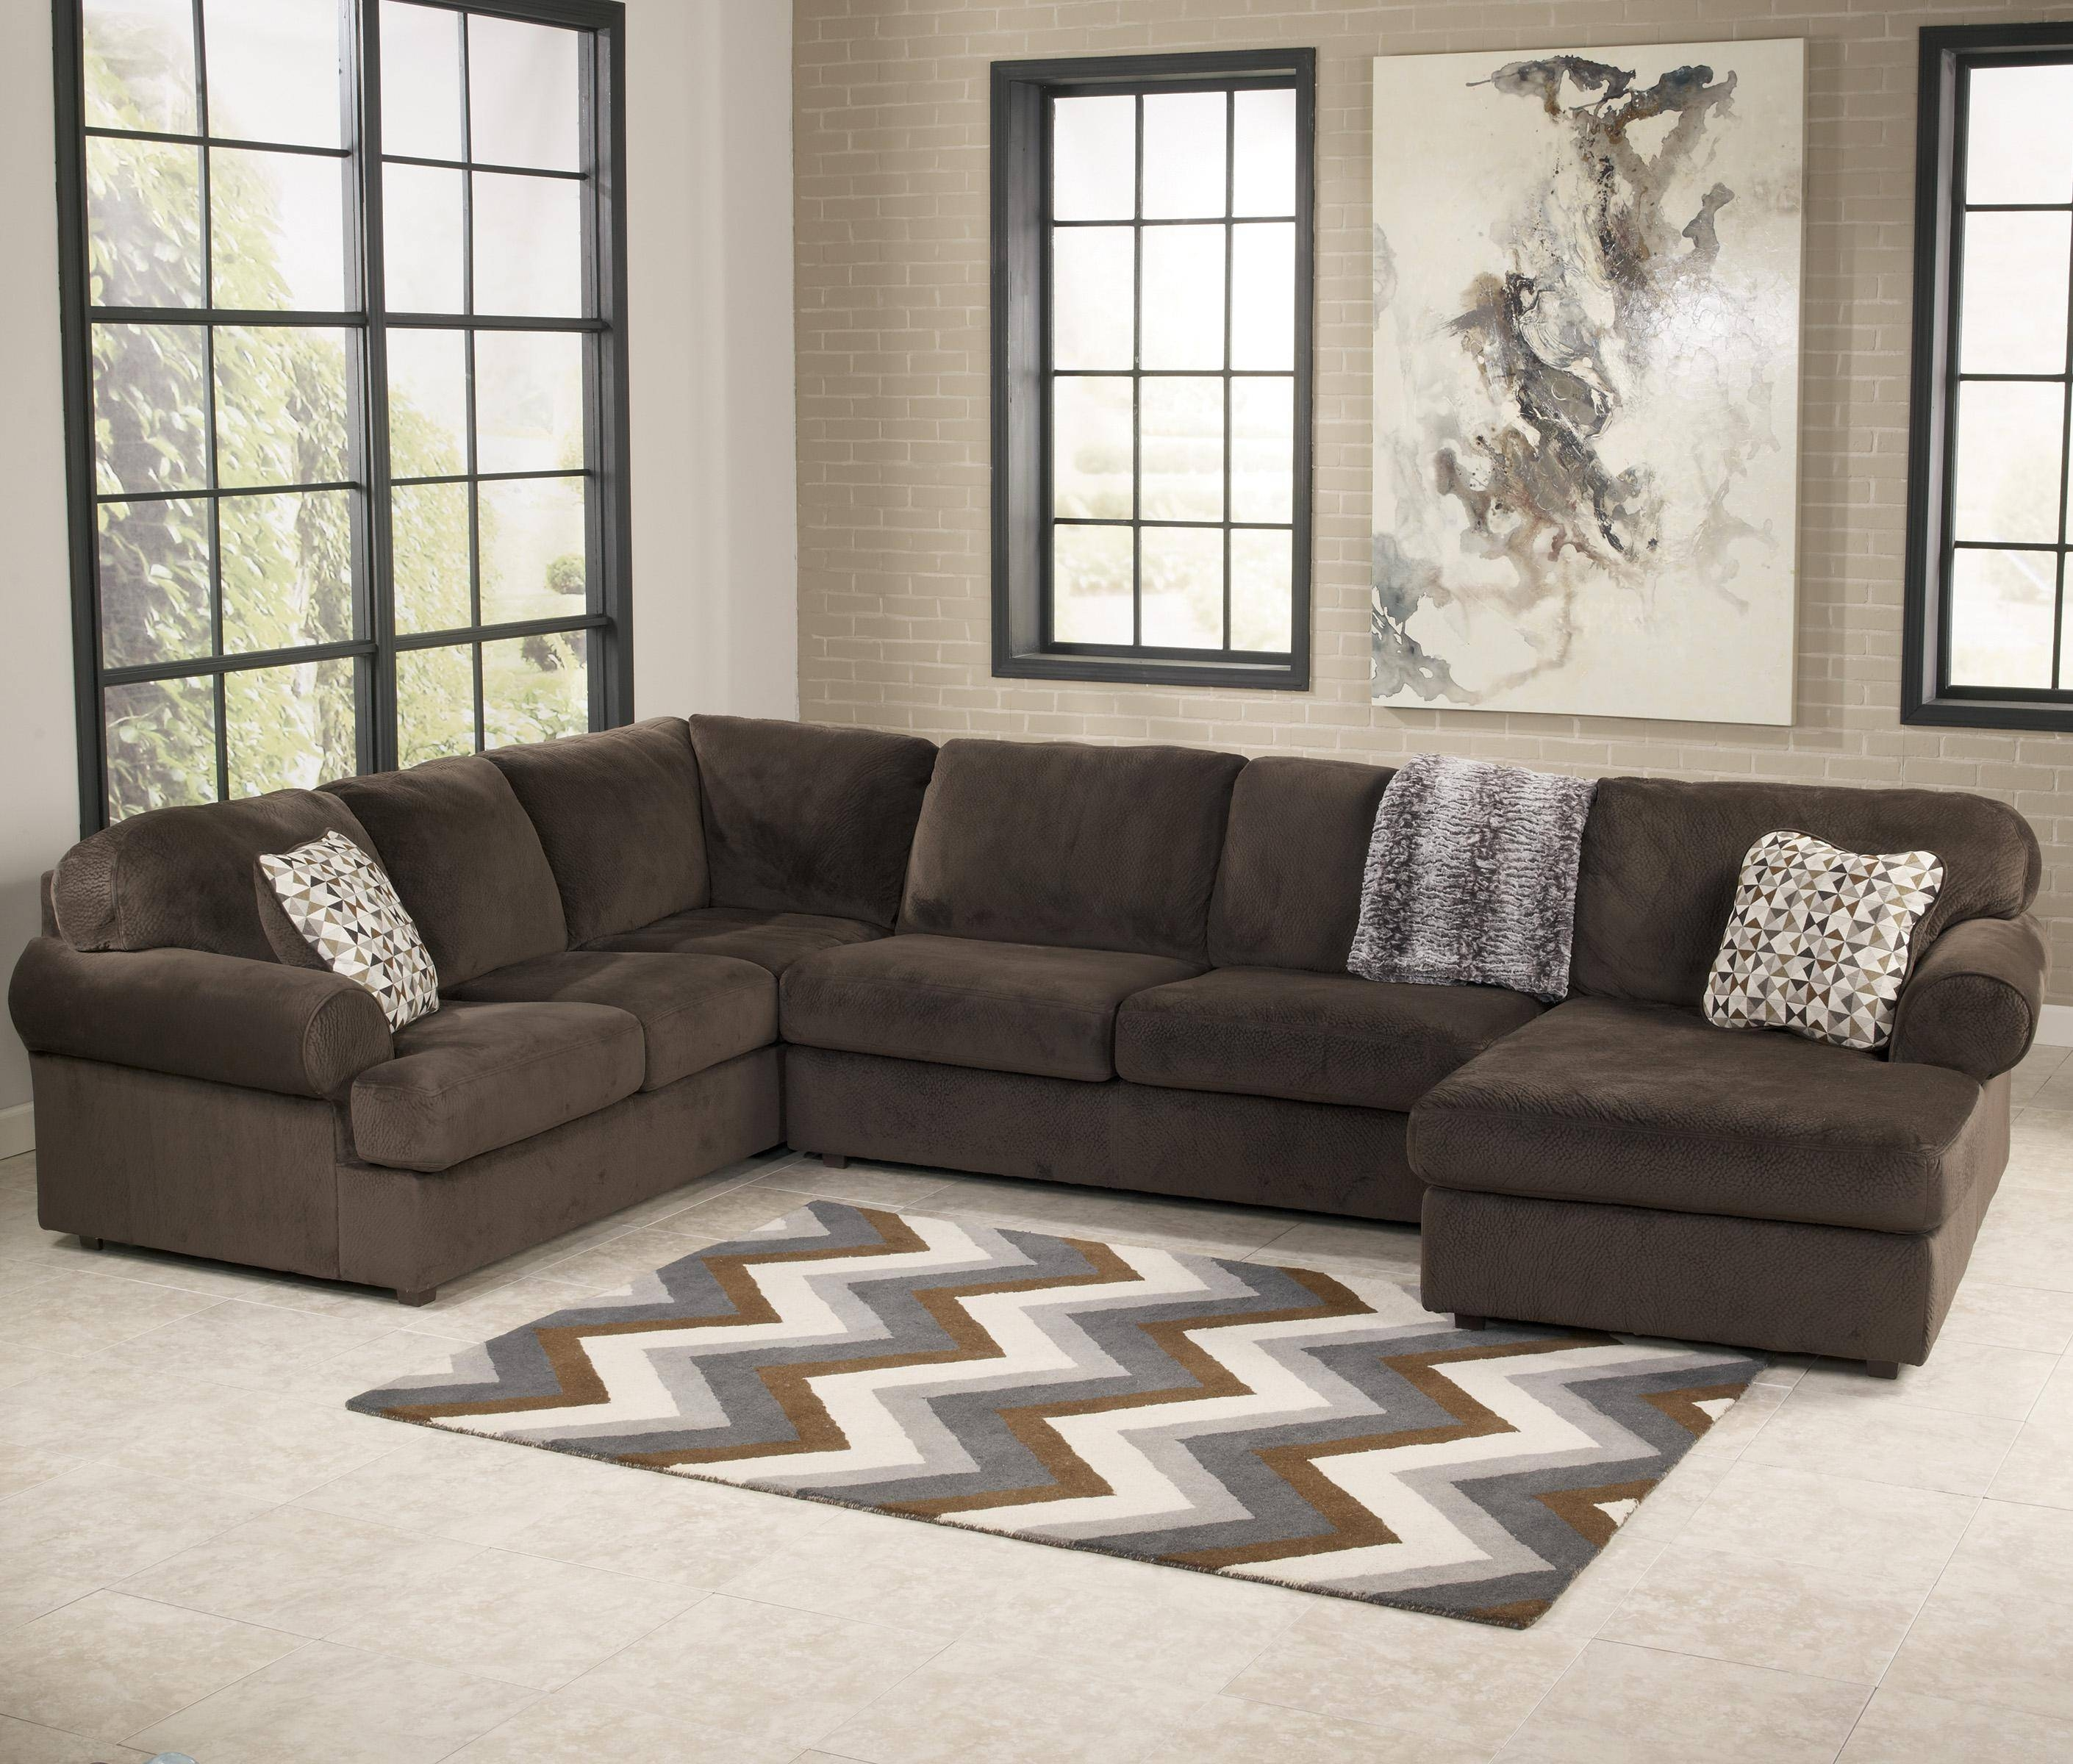 Signature Designashley Jessa Place - Chocolate Casual for Signature Design Sectional Sofas (Image 12 of 15)